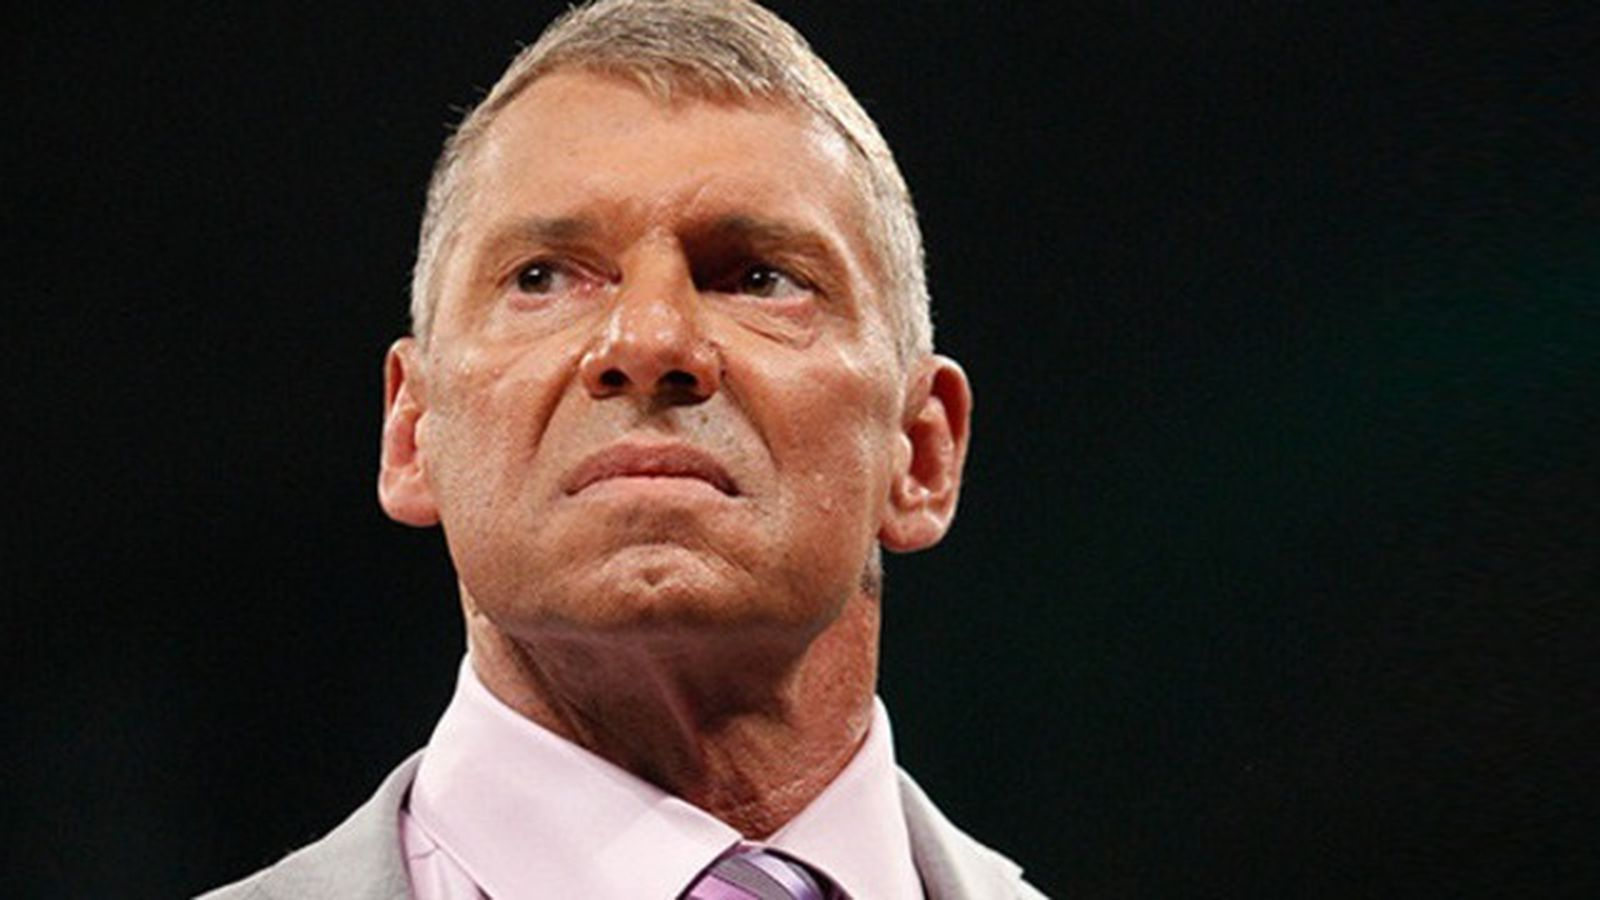 Vince Mcmahon Involved In Car Accident Near Wwe